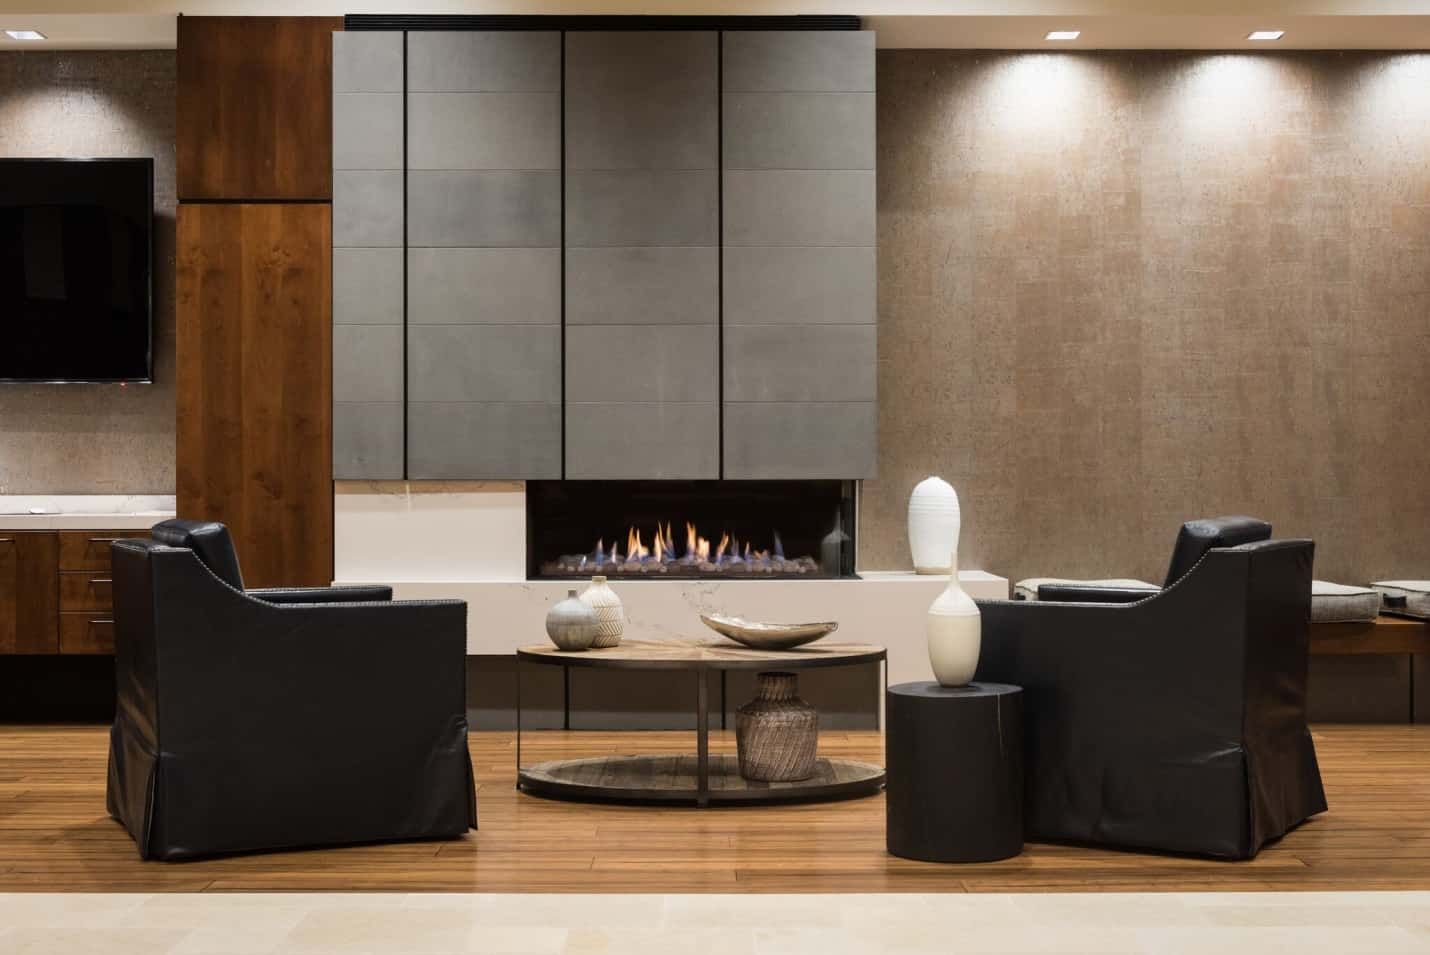 5 Ways A Modern Gas Fireplace Can Improve Your Life,House Design Plan 3d Online Free